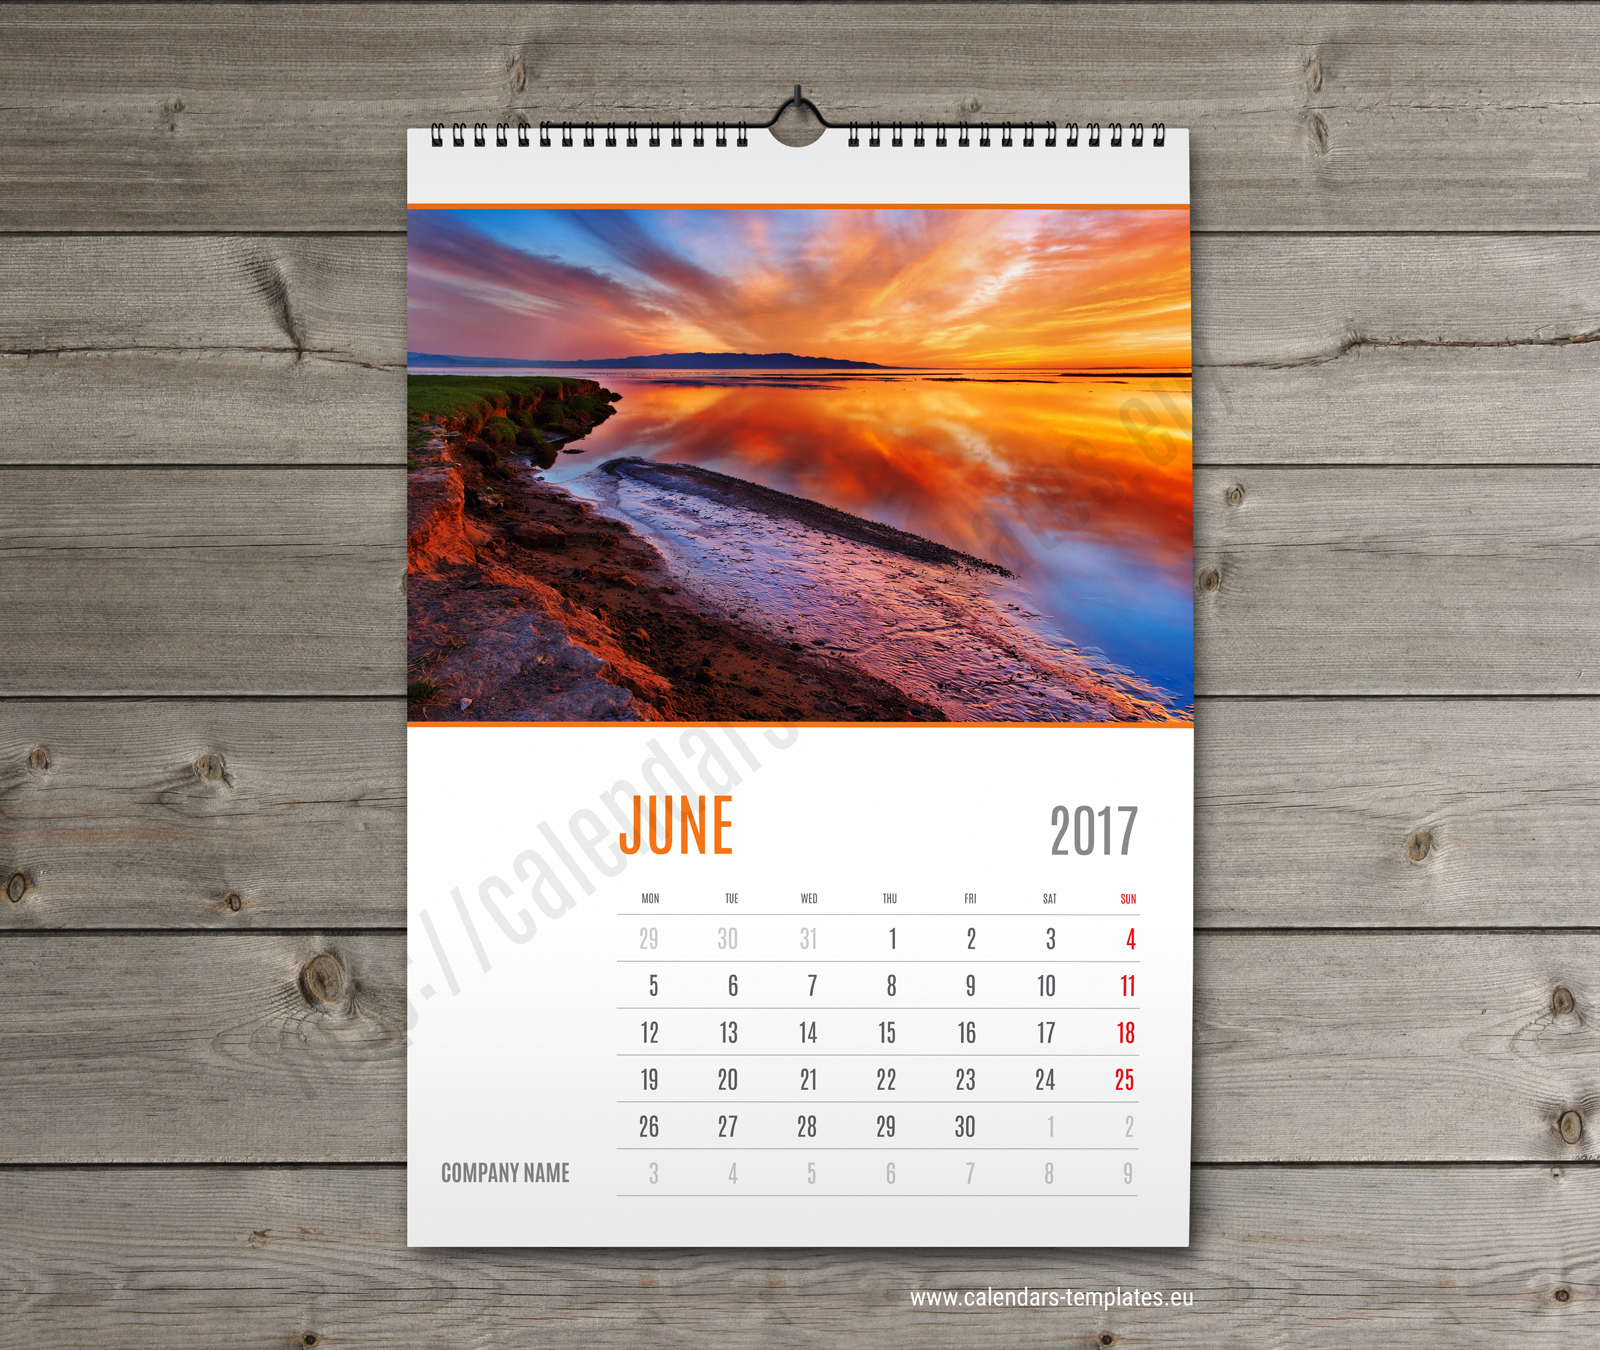 Calendar Design Wallpaper : Wall calendar template monthyly yearly custom